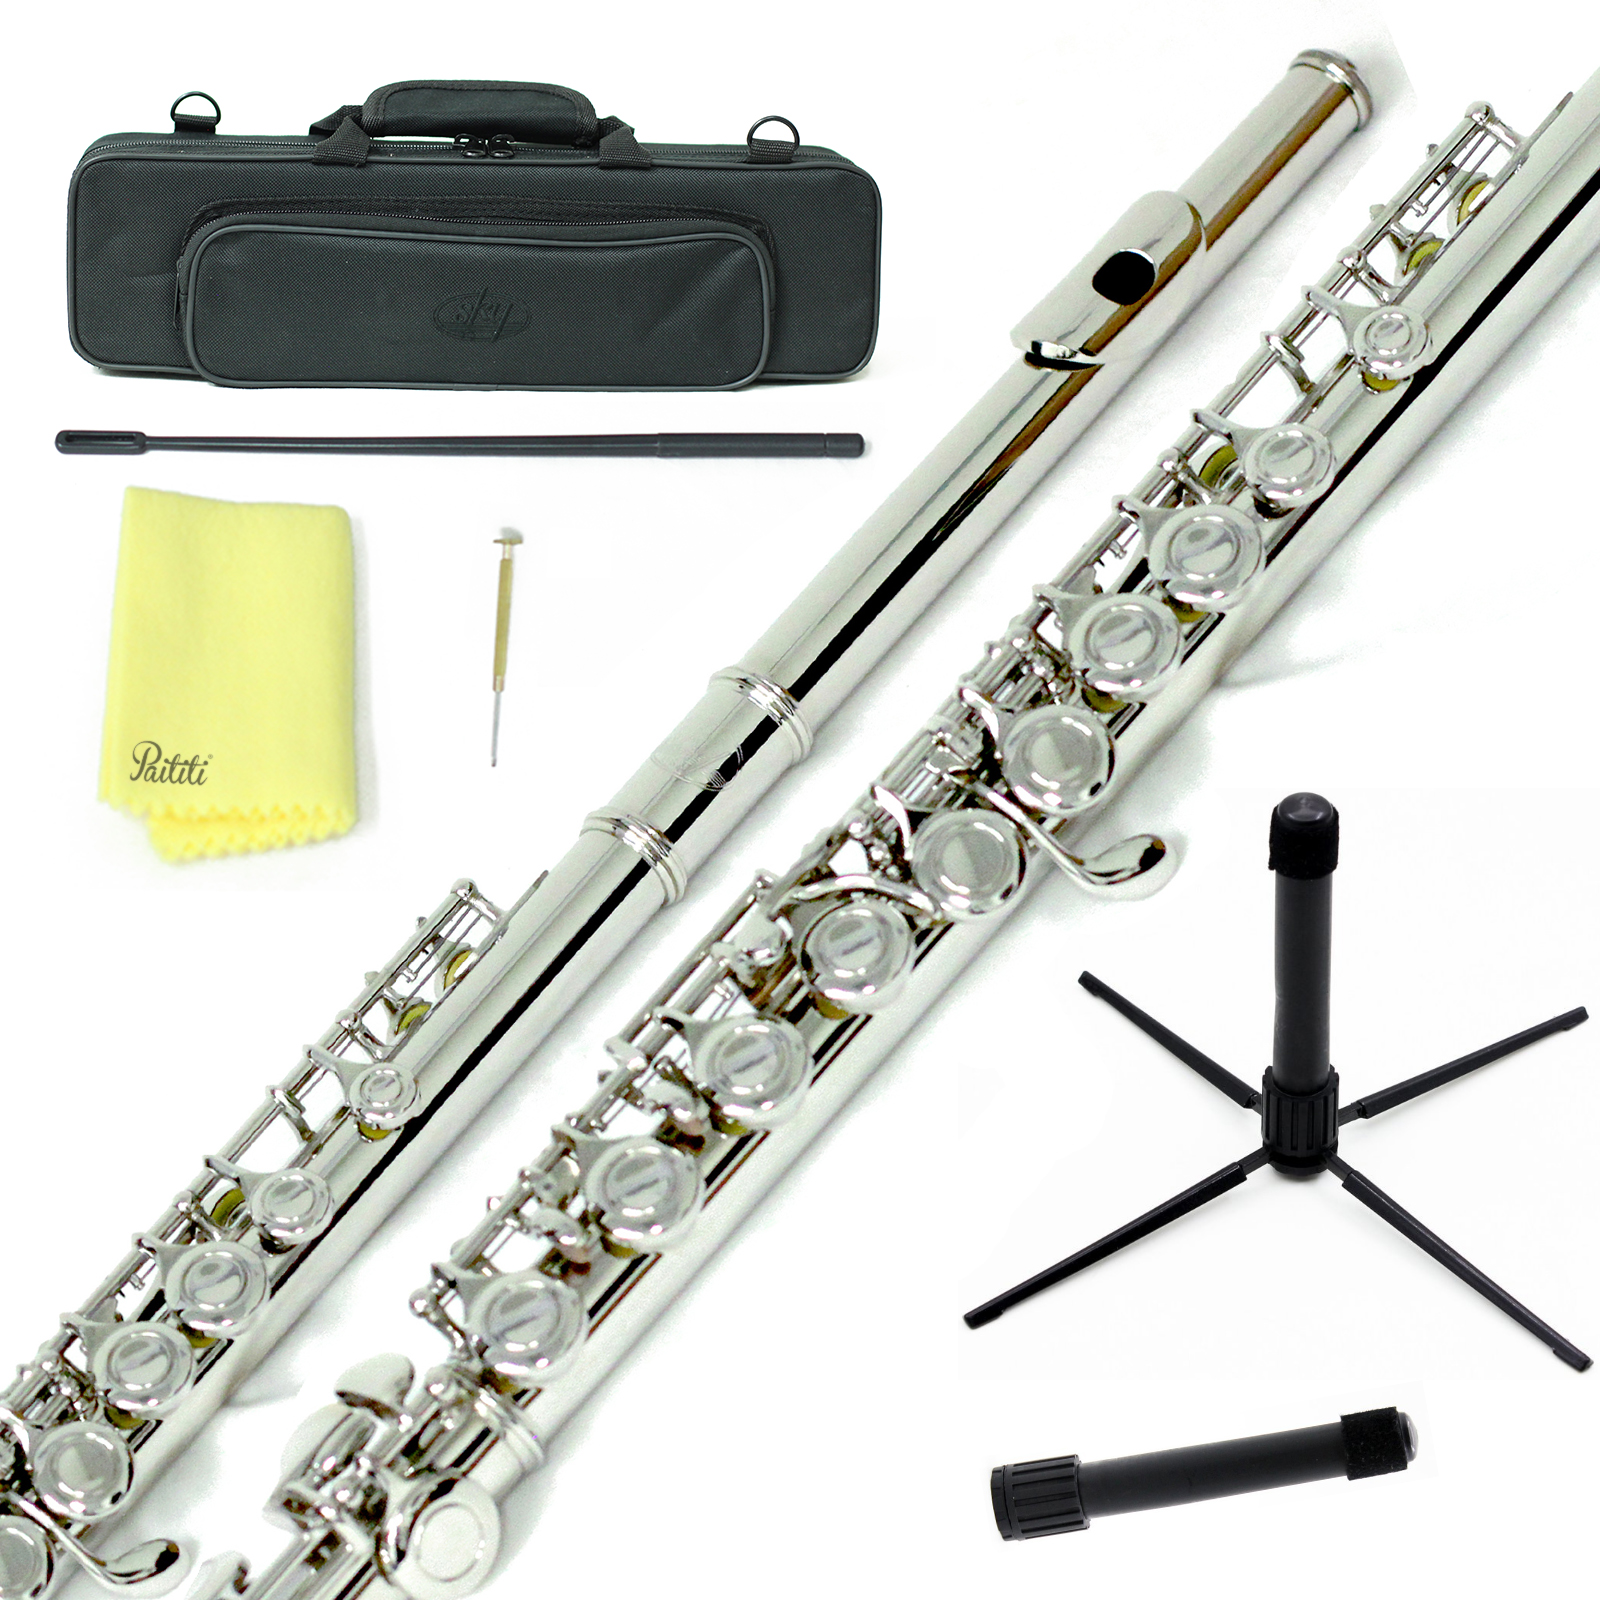 Sky Closed Hole C Flute with Lightweight Case, Cleaning Rod, Cloth, Joint Grease and Screw Driver - Nickel